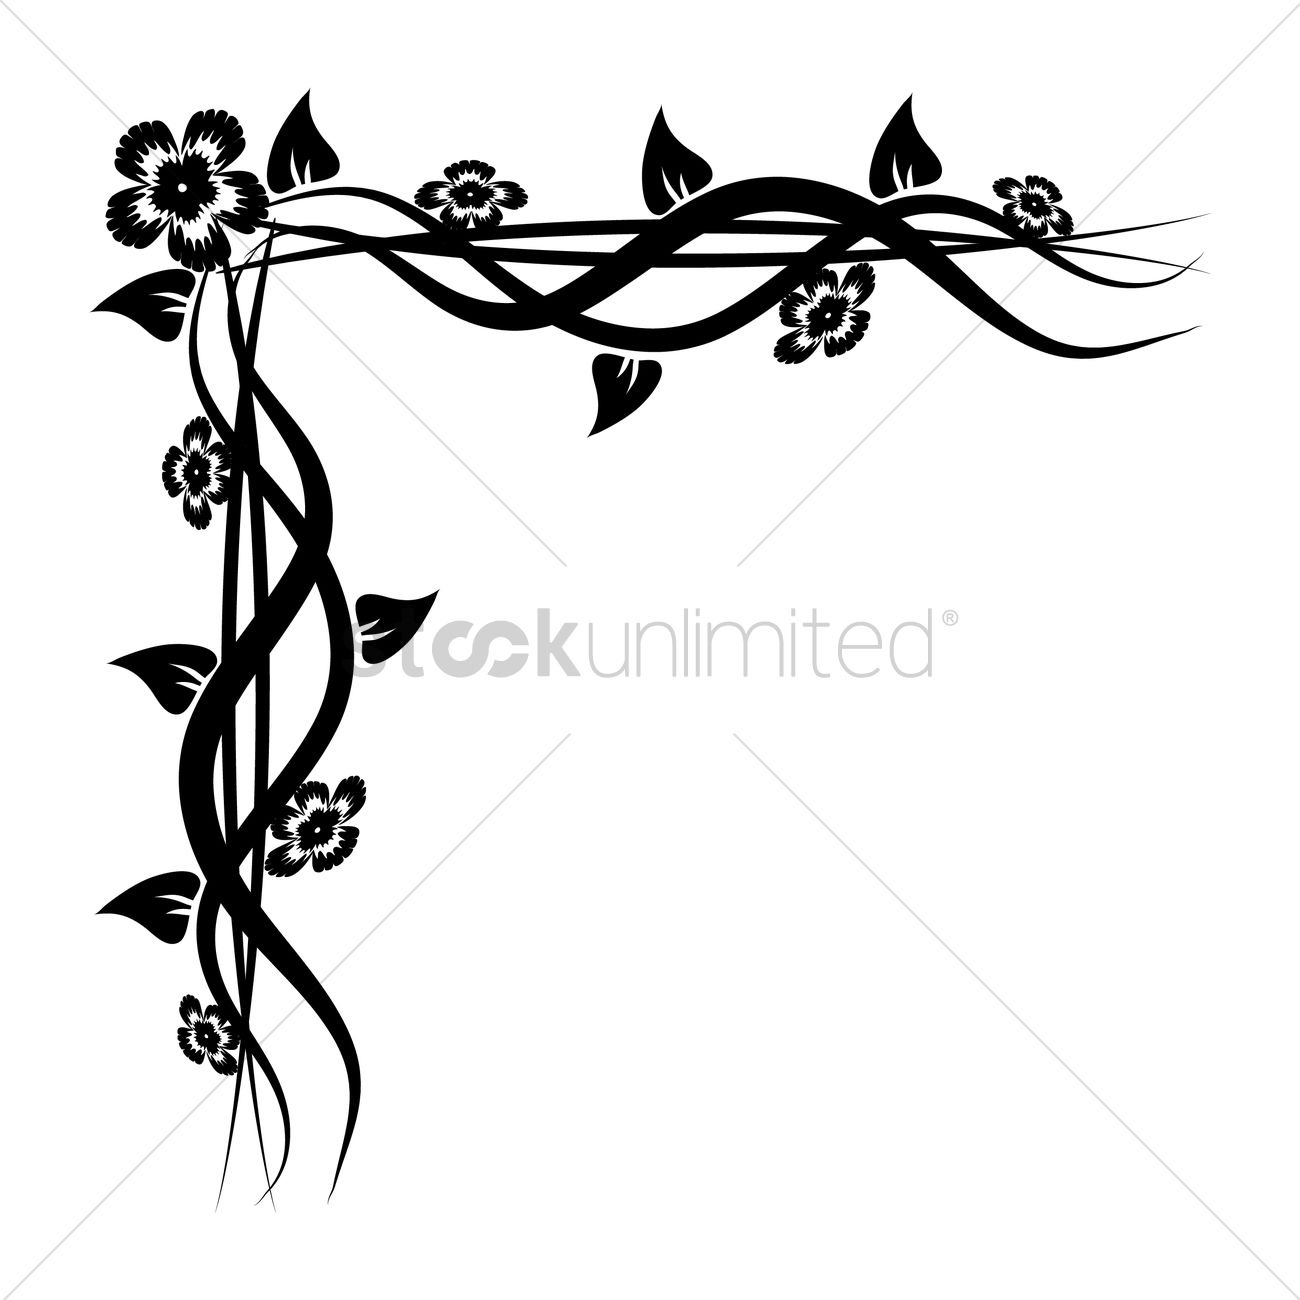 Elegant black and white border design